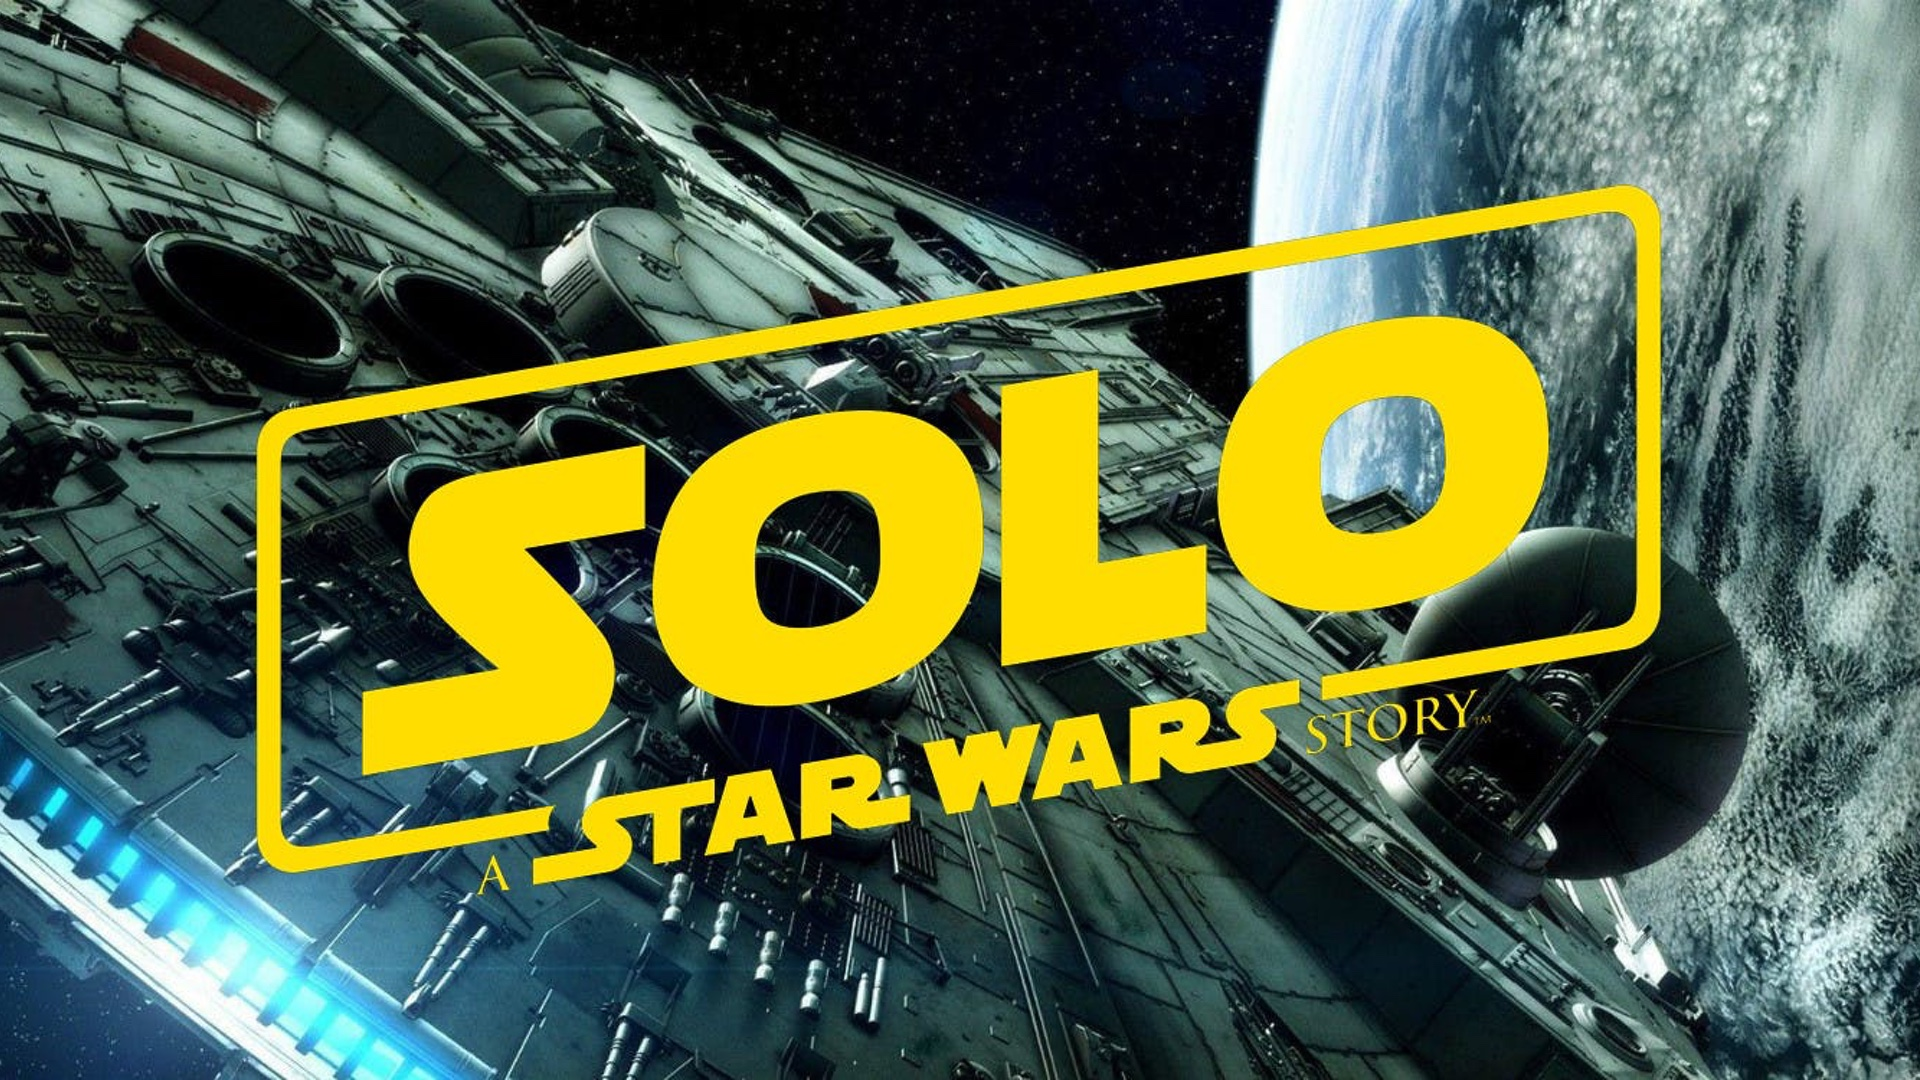 the-first-trailer-for-solo-a-star-wars-story-is-reportedly-coming-soon-social.jpg